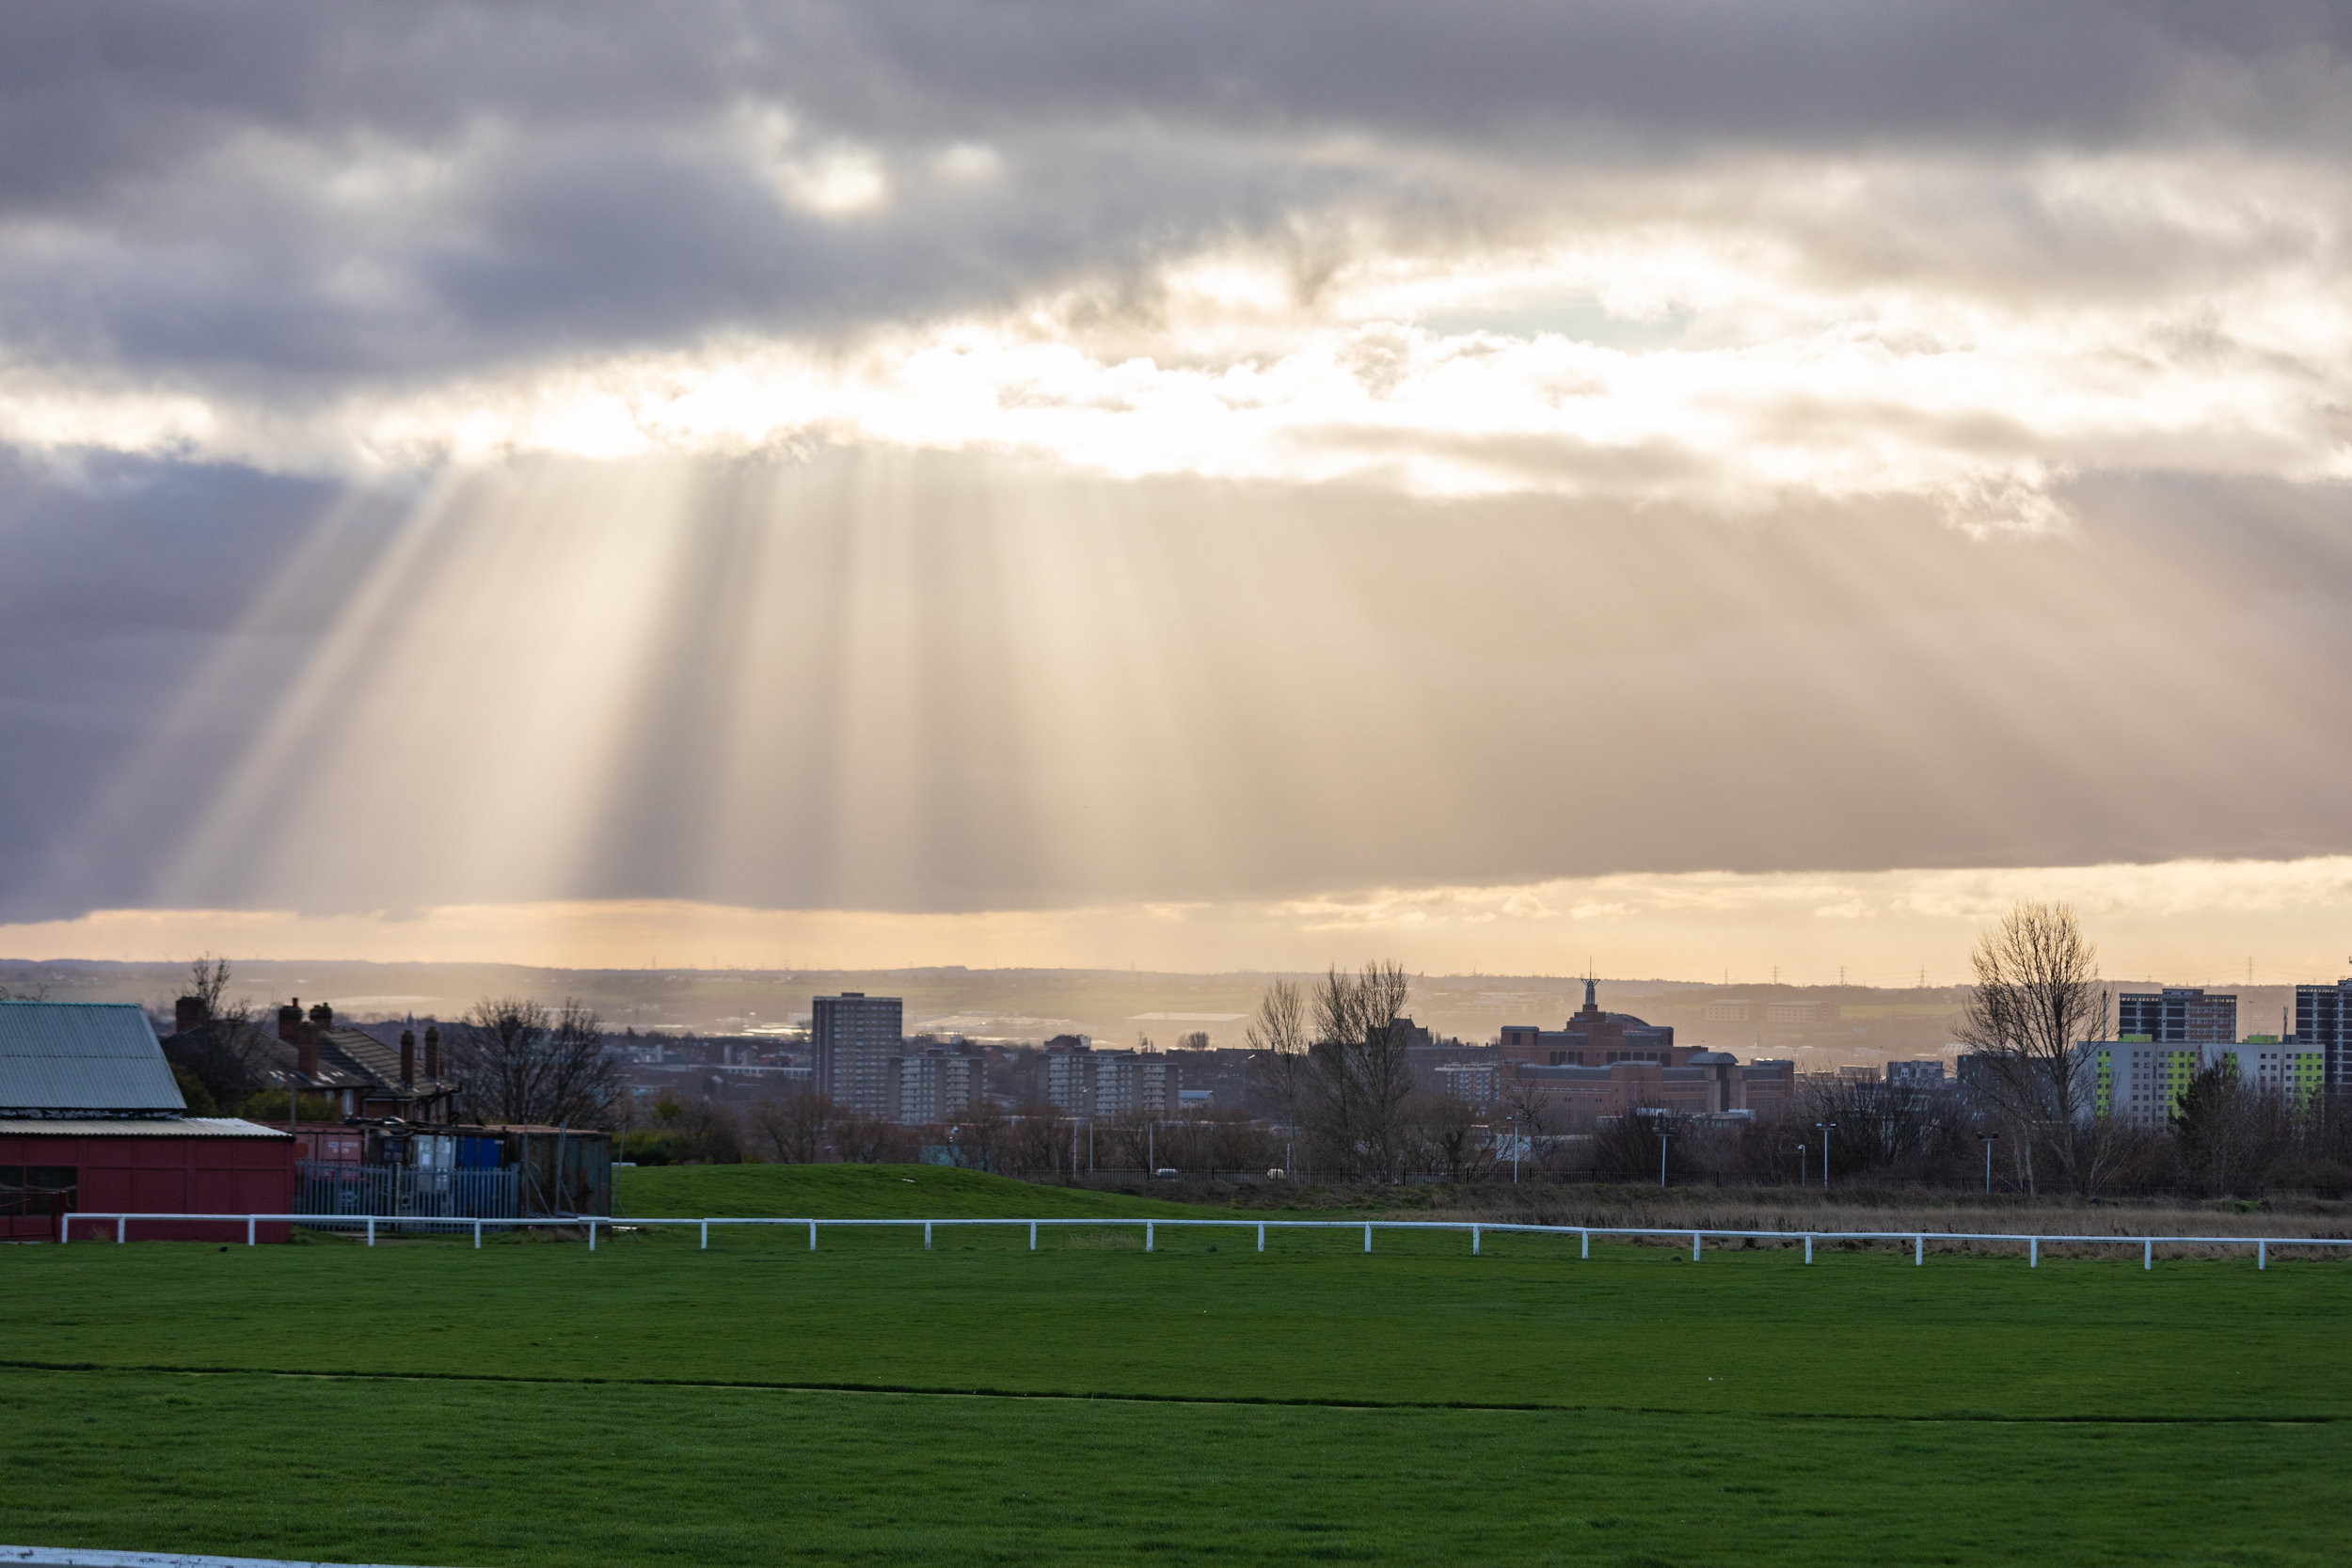 Sunlight breaking through the clouds on Scott Hall Field, Leeds